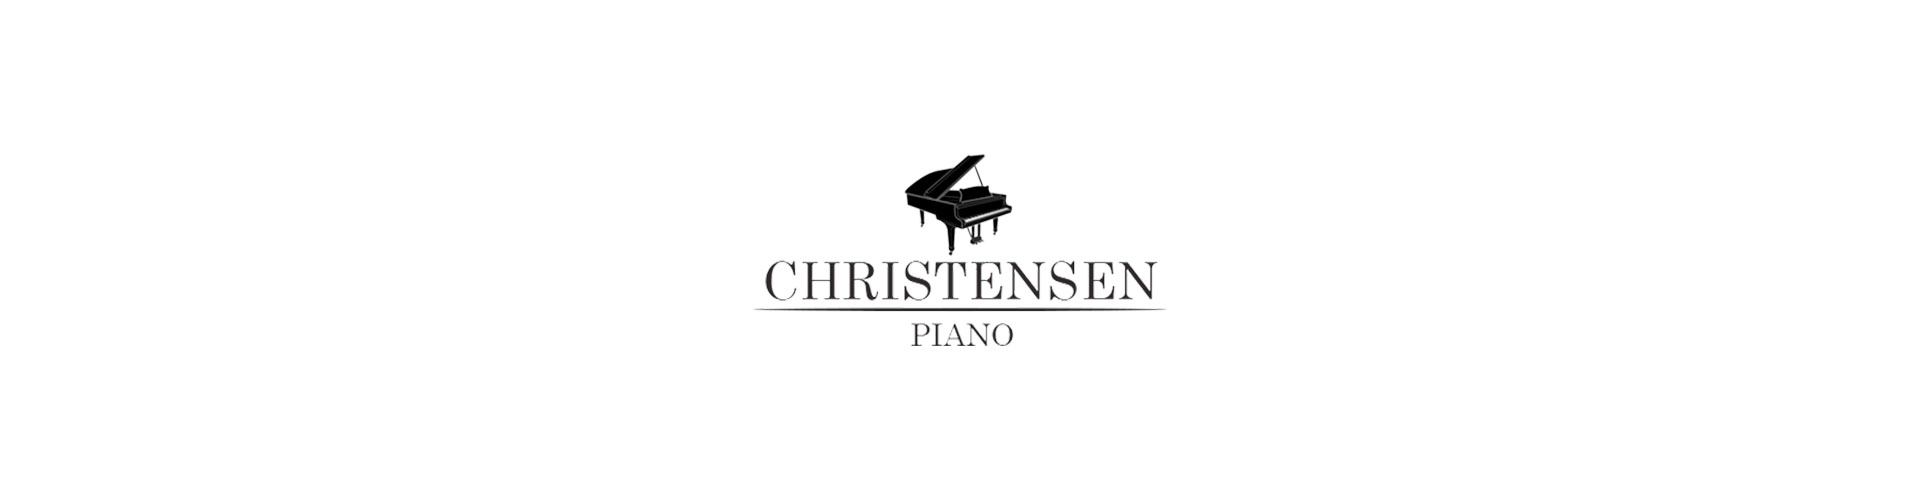 christensen piano blog